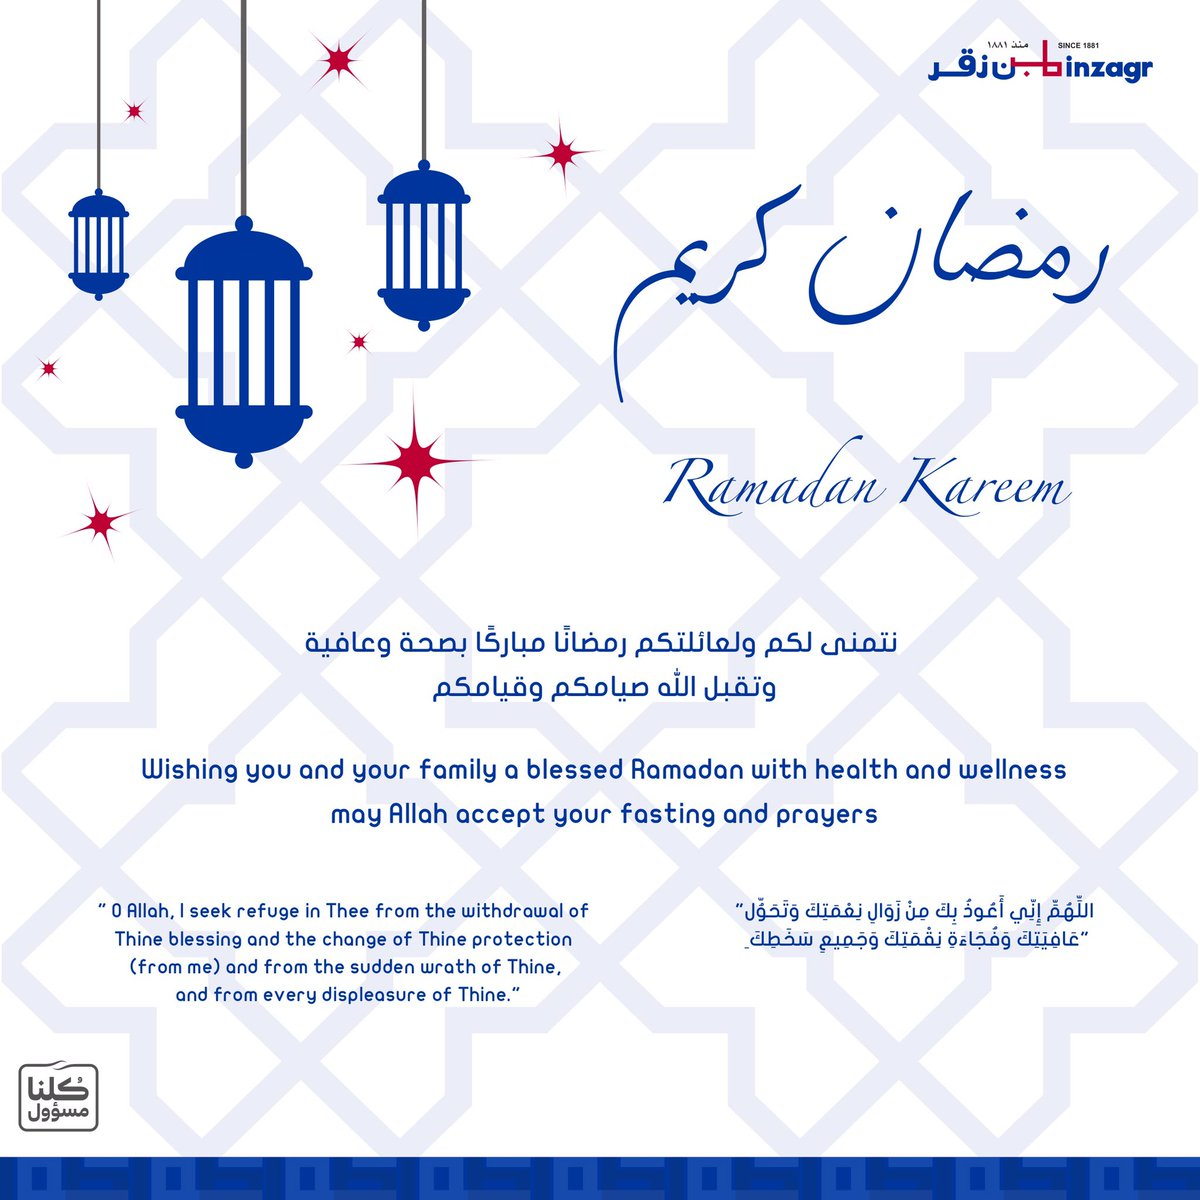 Ramadan Kareem | رمضان كريم https://t.co/VriEGK6eLf